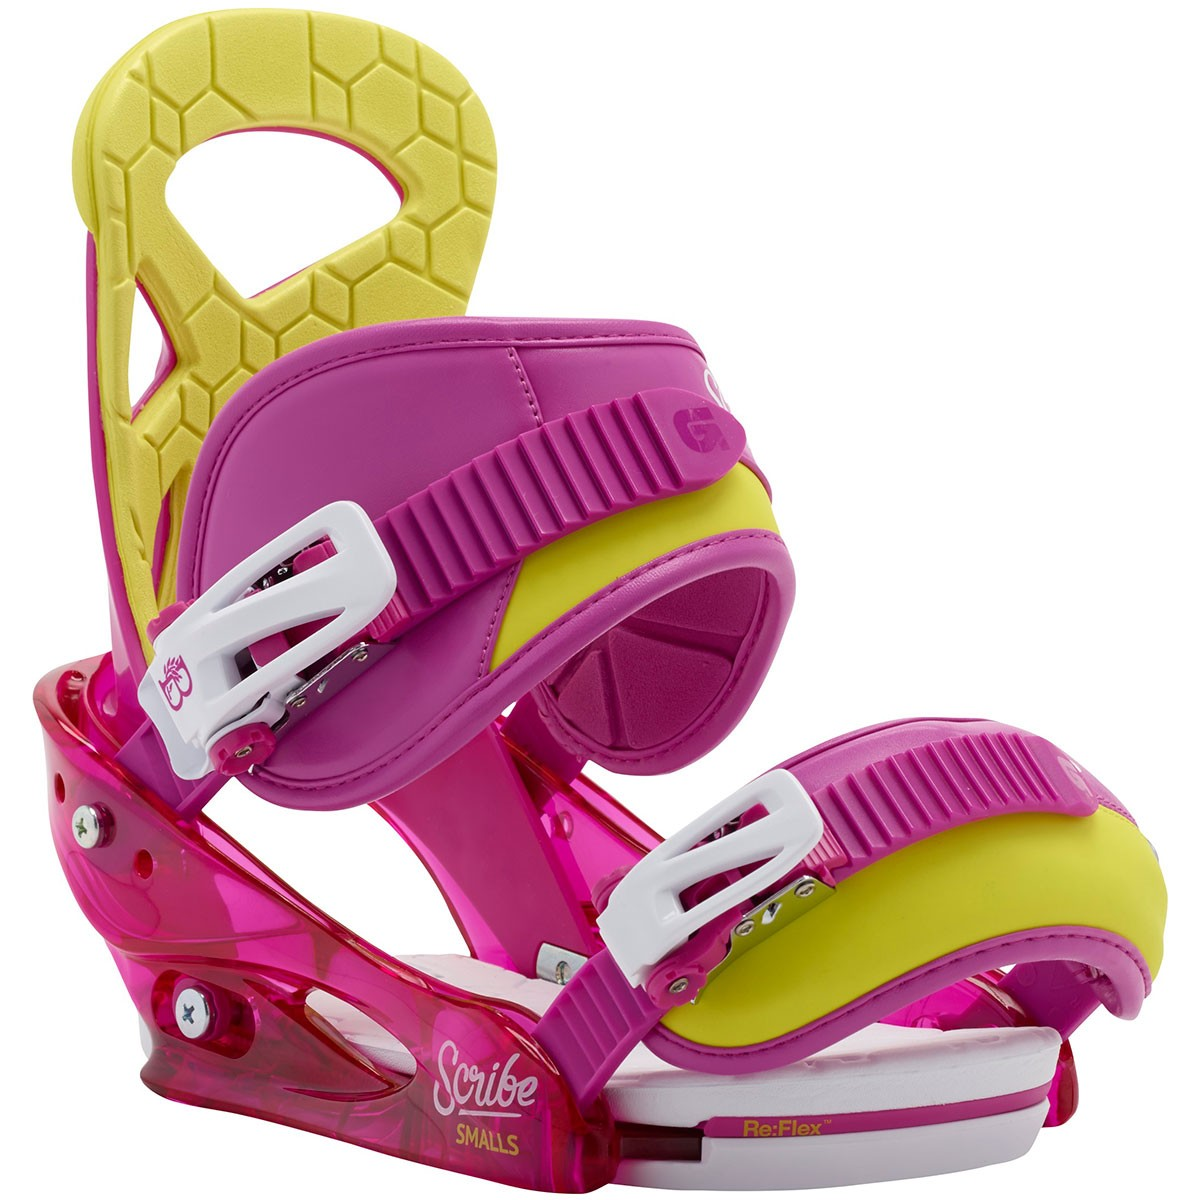 Burton Scribe Smalls Youth Snowboard Bindings 2015 - Razzle Dazzle Pink